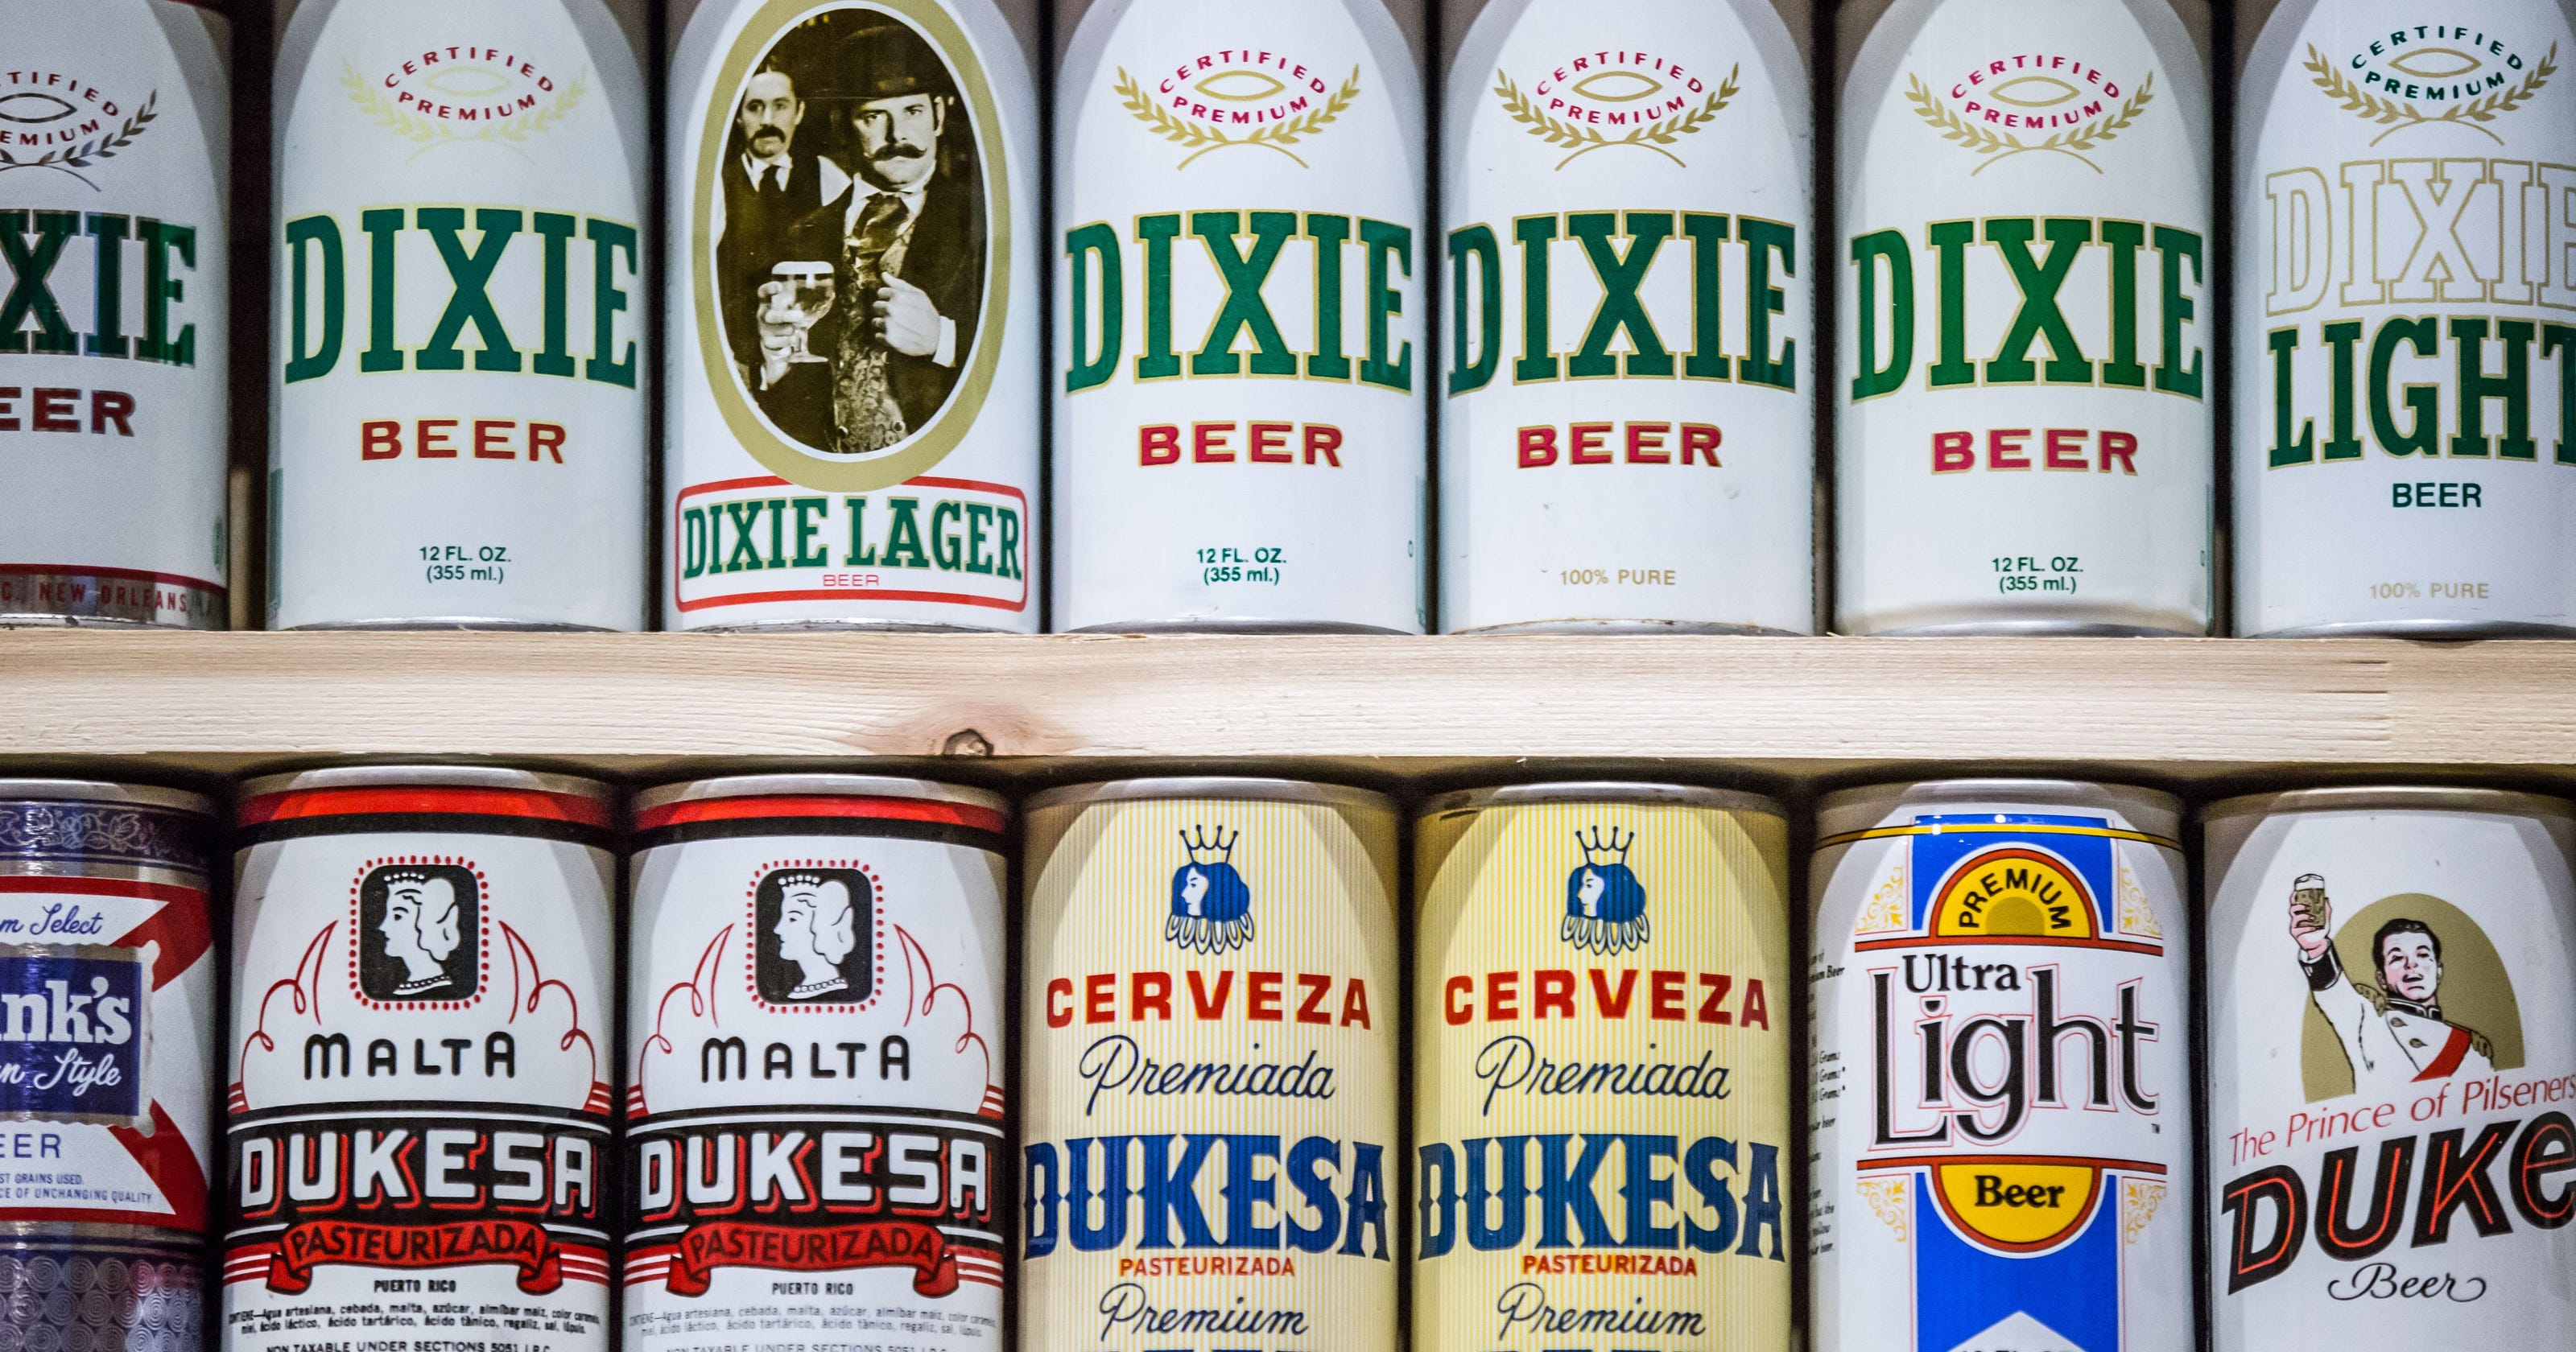 Dixie Beer wants your suggestions for a new name